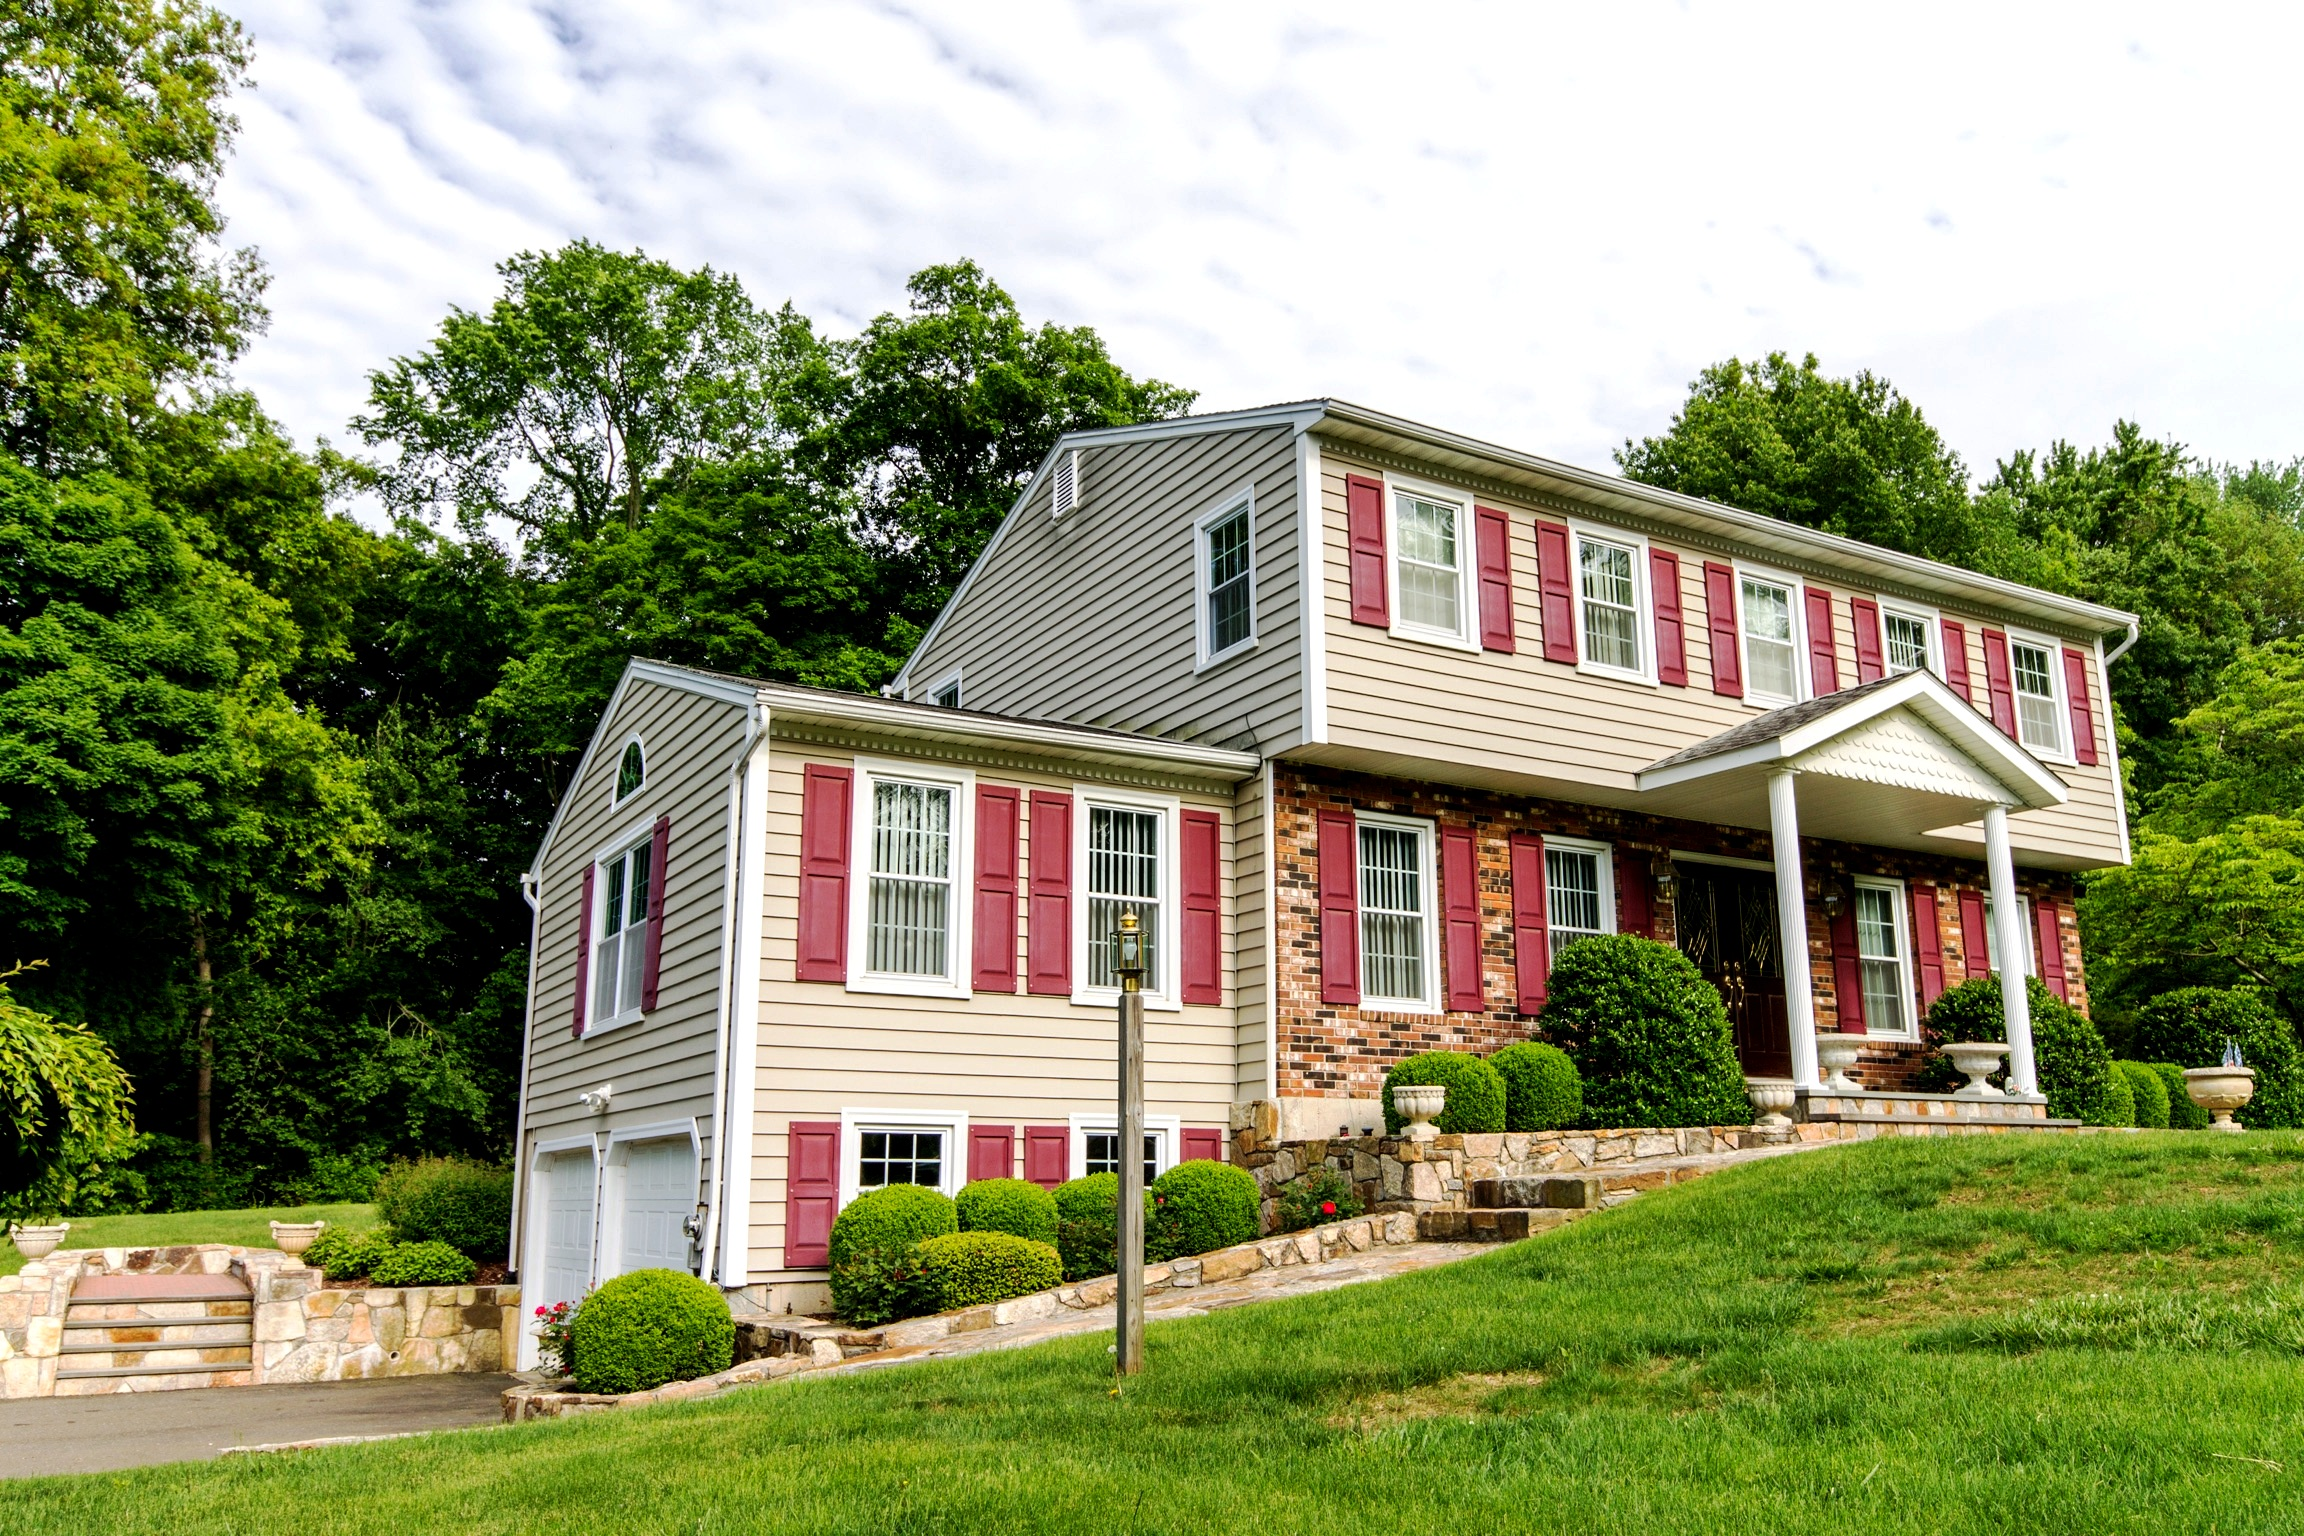 Single Family Home for Sale at Immaculate Colonial 8 Caisson Drive Danbury, Connecticut 06810 United States